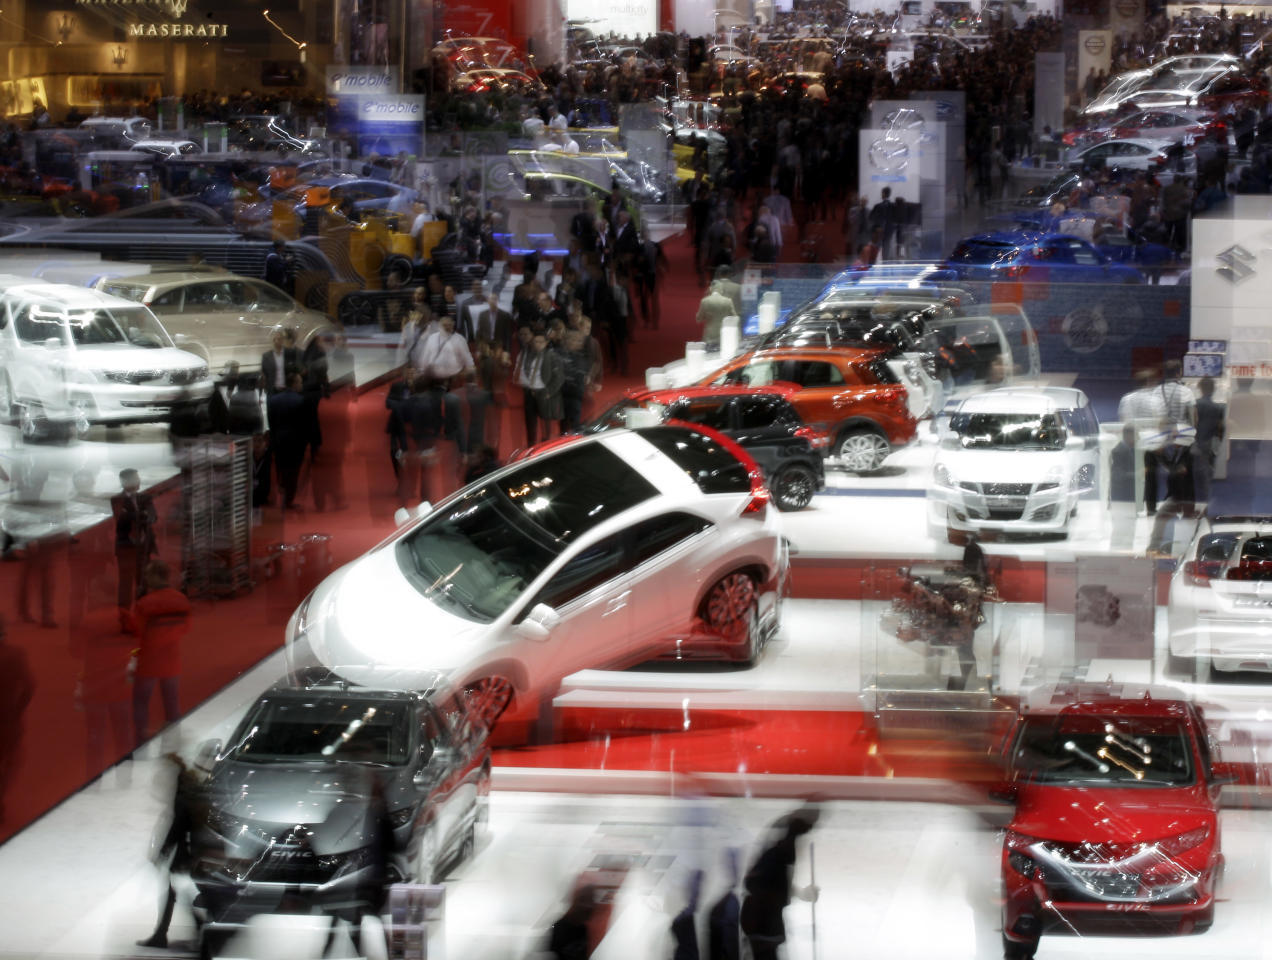 In this long-time exposed picture a general view is photographed at hall 5 on Wednesday, March 7, 2012 during the press preview days at the 82nd Geneva International Motor Show in Geneva, Switzerland.The Motor Show will open it's doors to public from 8th to the 18th of March presenting more than 260 exhibitors and more than 180 world and European premieres. (AP Photo/Frank Augstein)